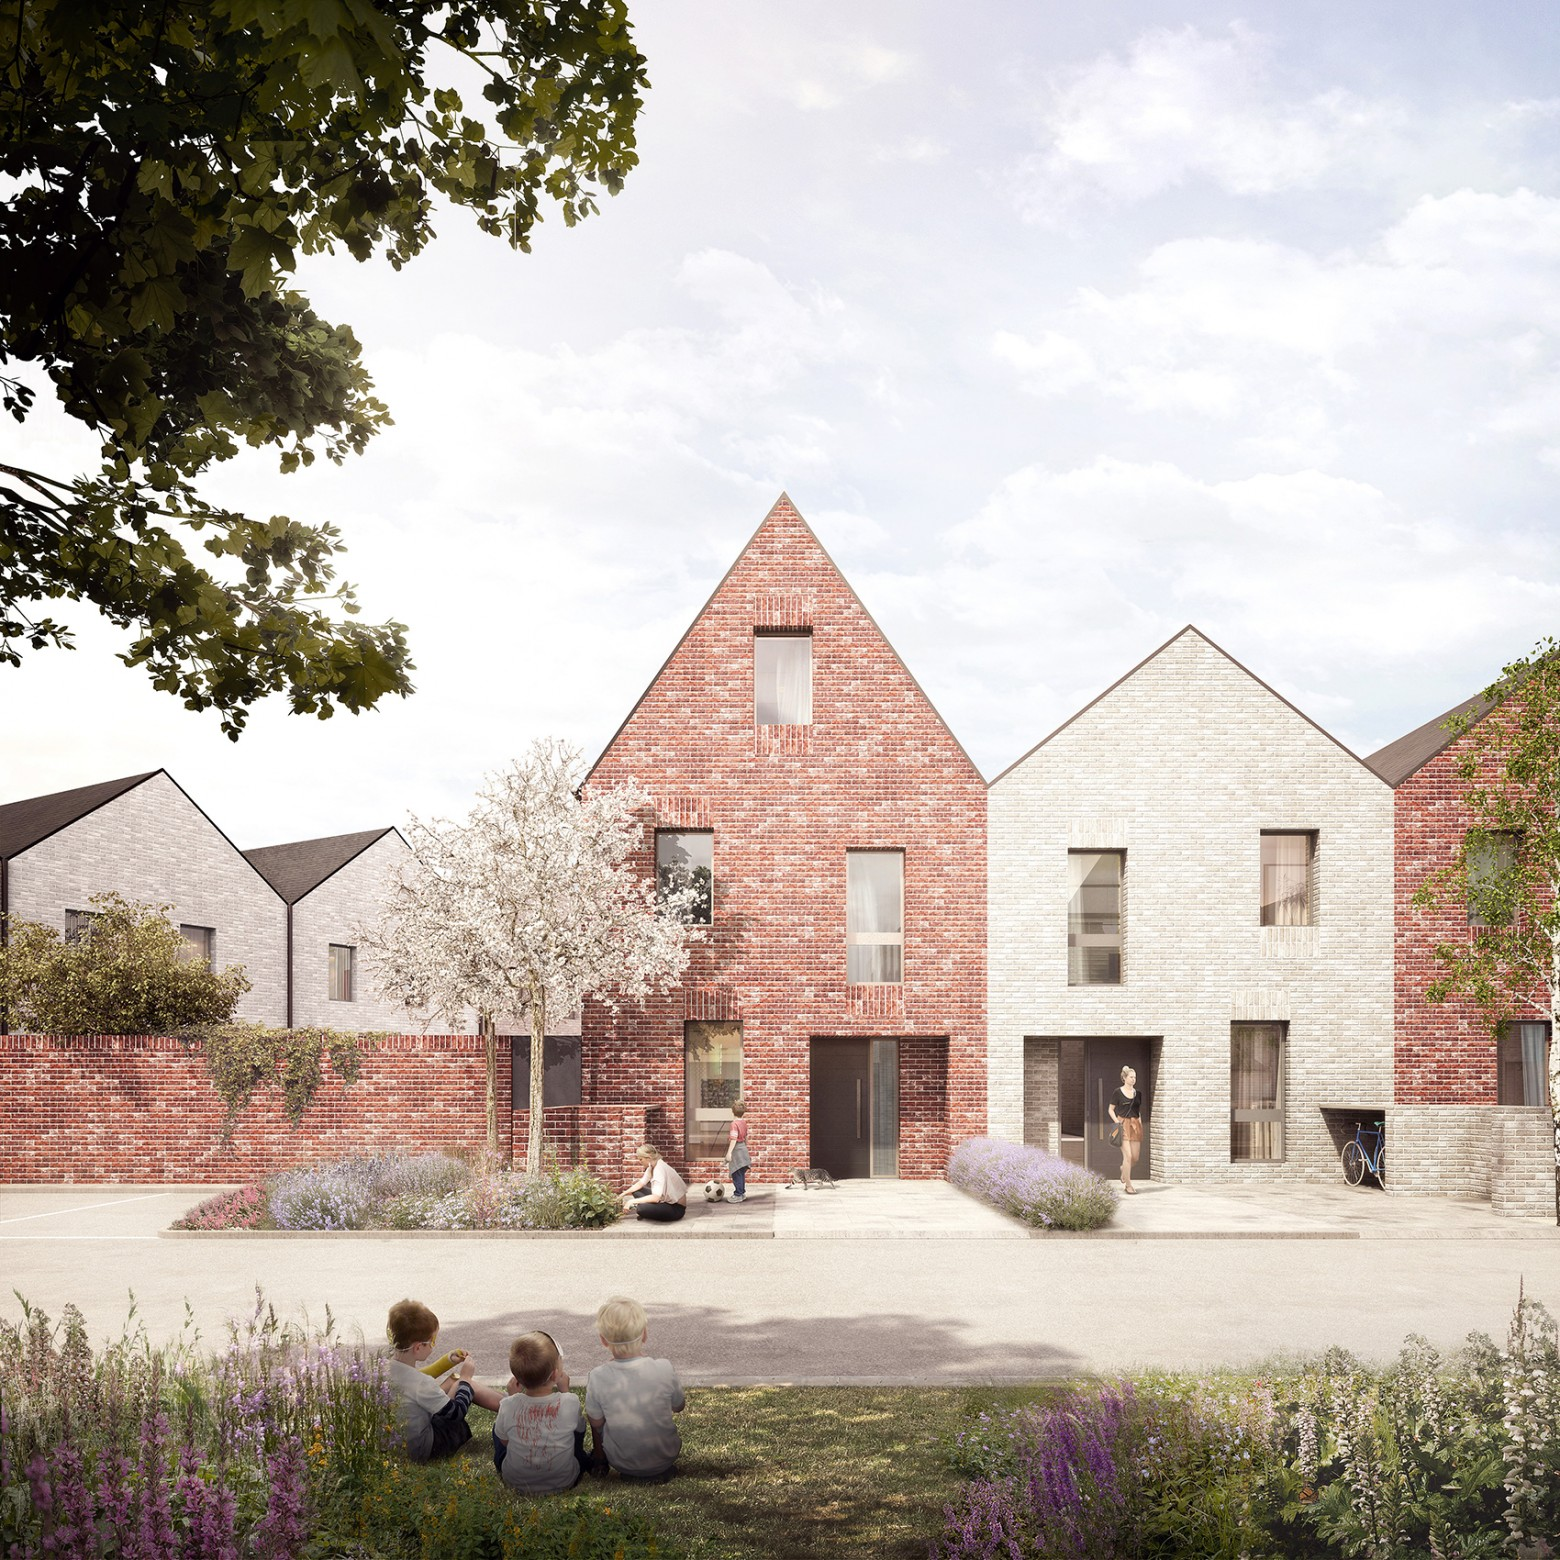 Planning submitted for new homes in Tilbury